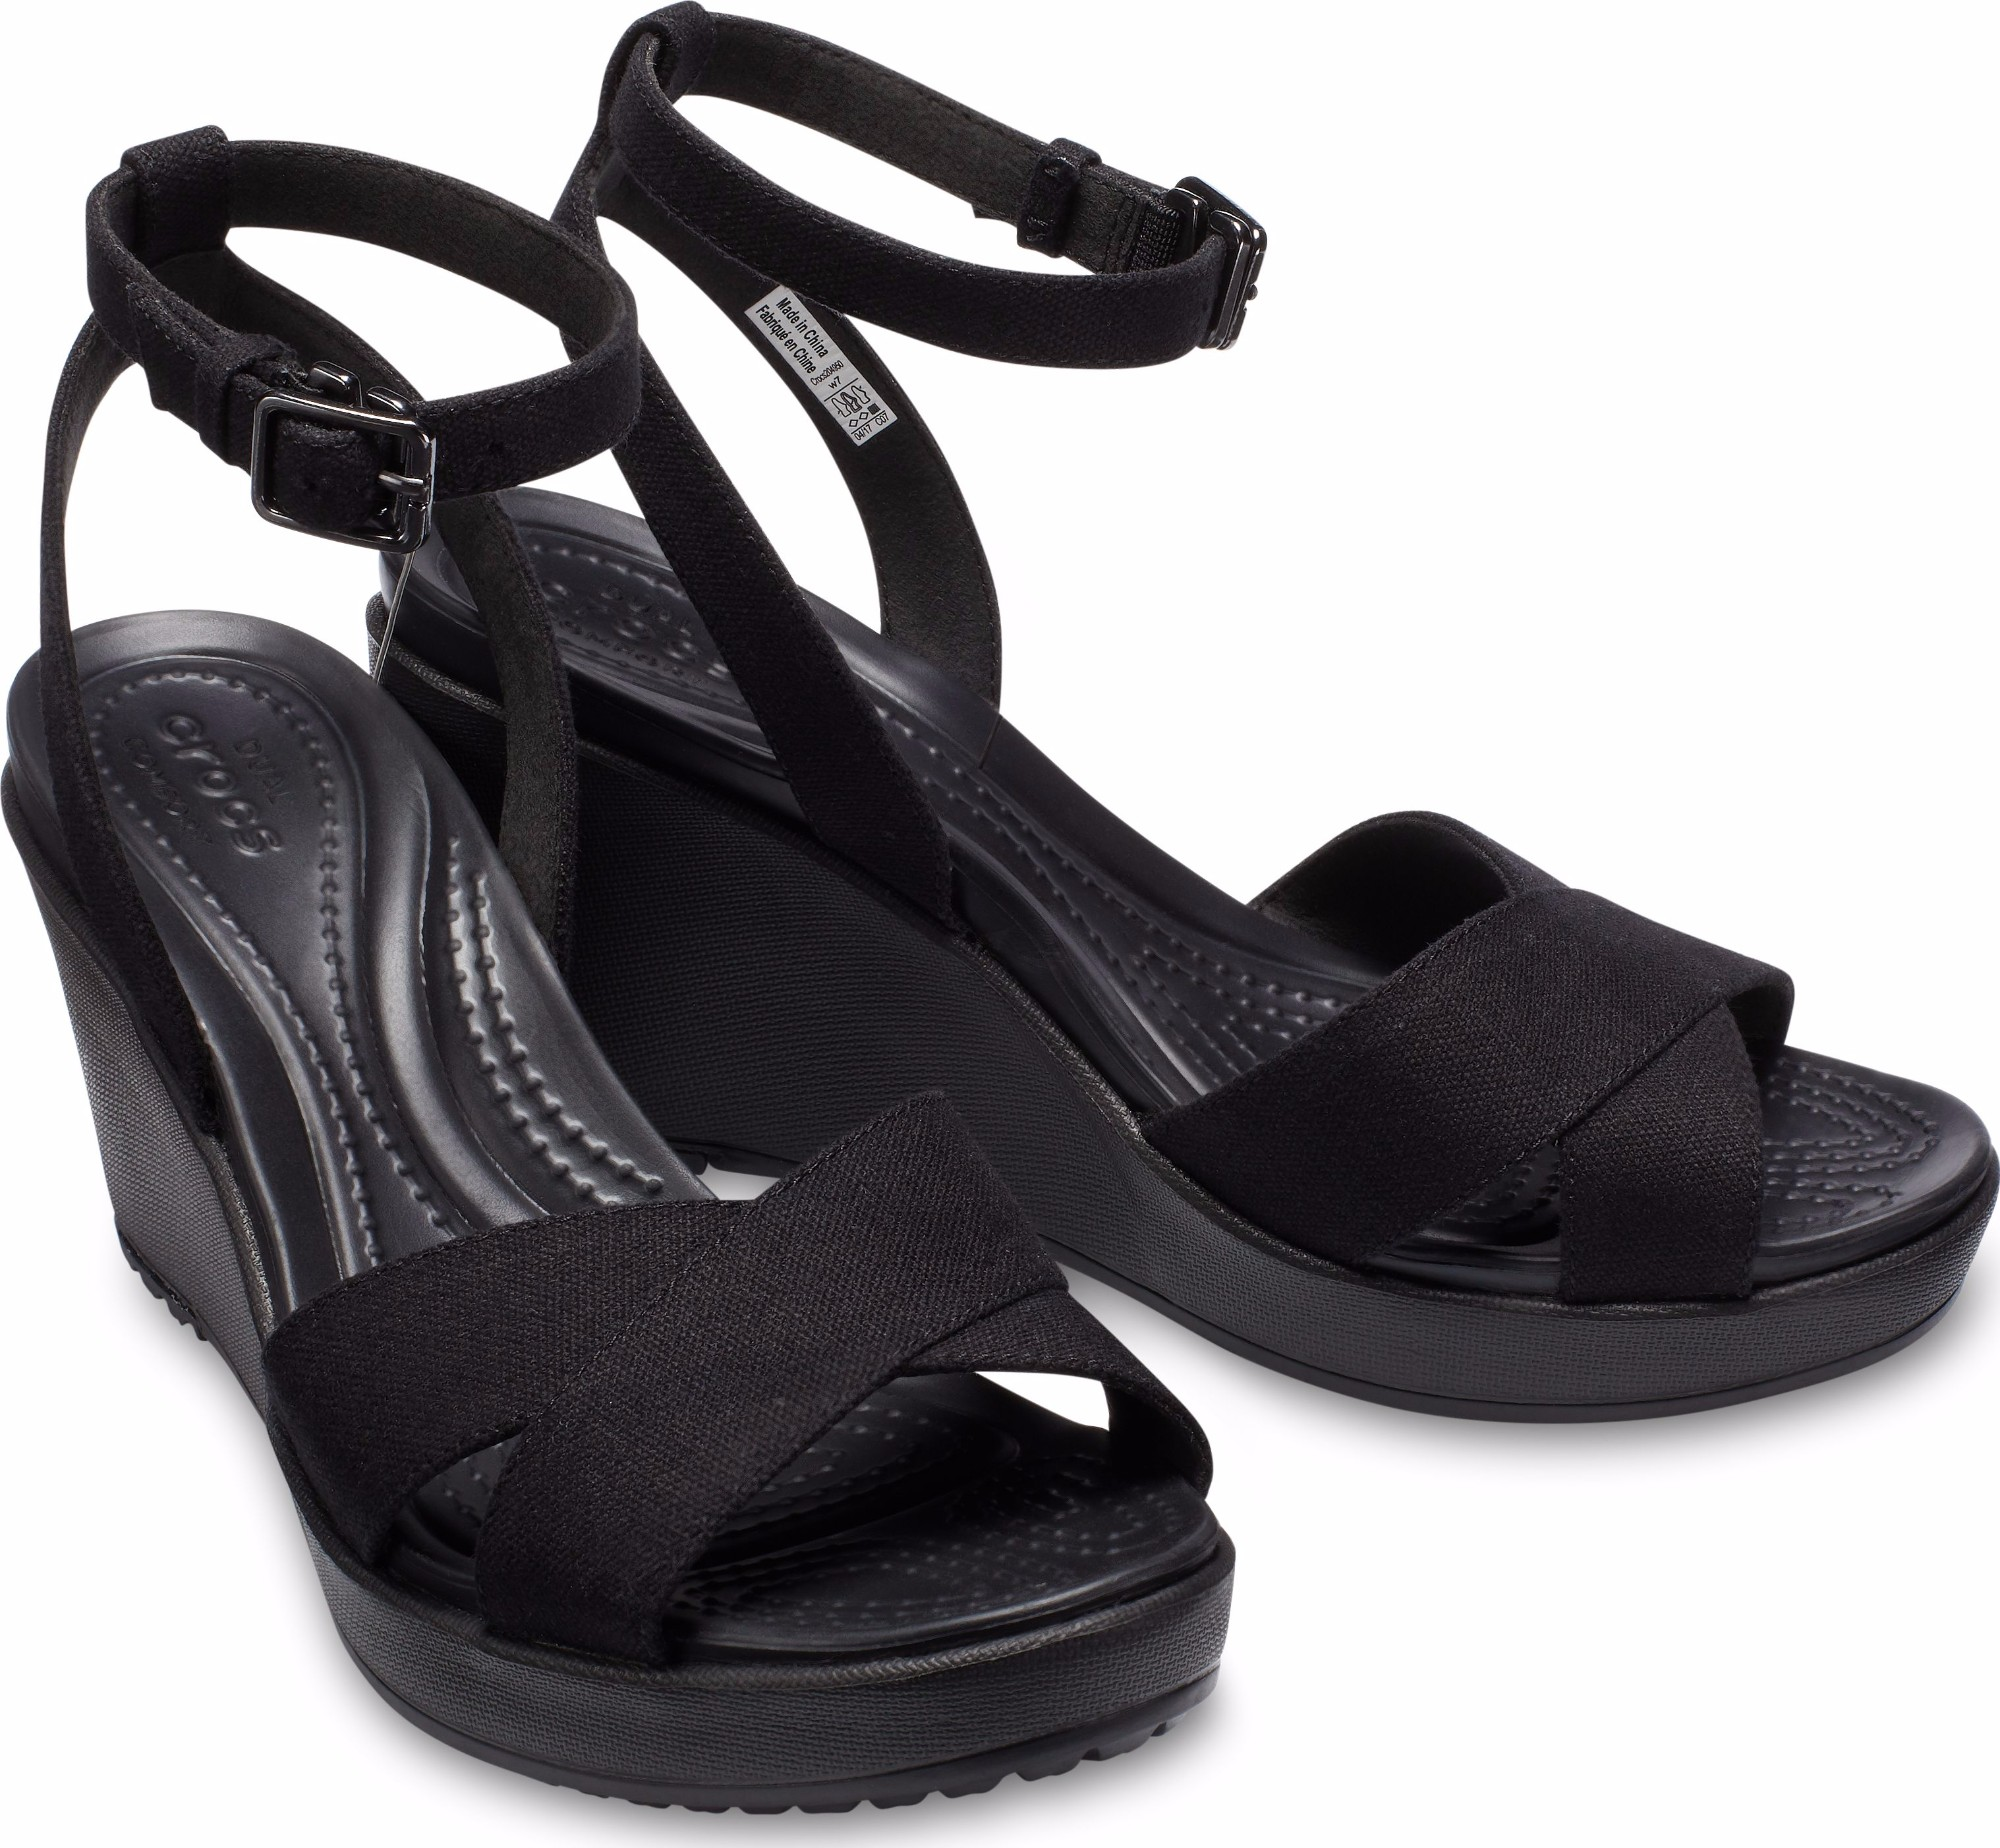 321437d2f6d5ef ... Crocs™ Women s Leigh II Ankle Strap Wedge Black Black ...